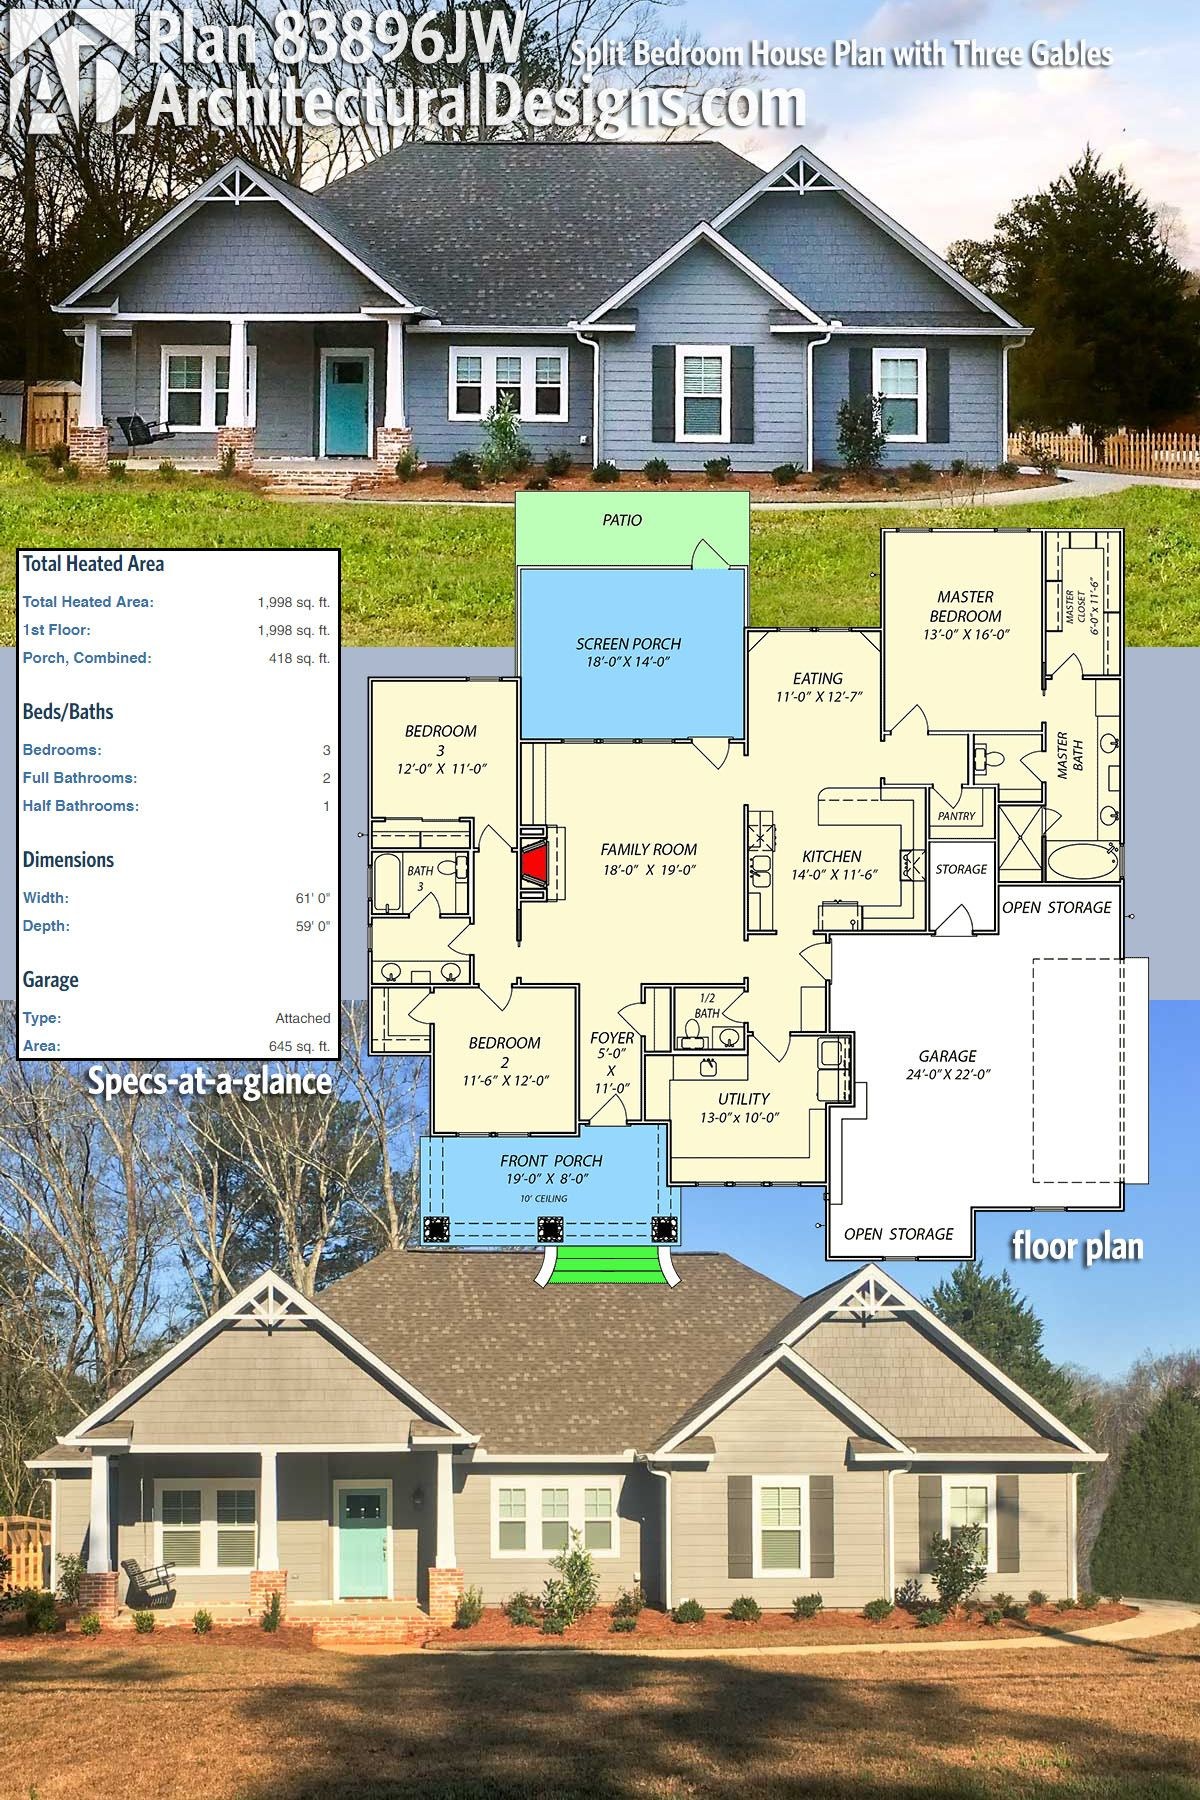 Do It Yourself Home Design: Plan 83896JW: Split Bedroom House Plan With Three Gables